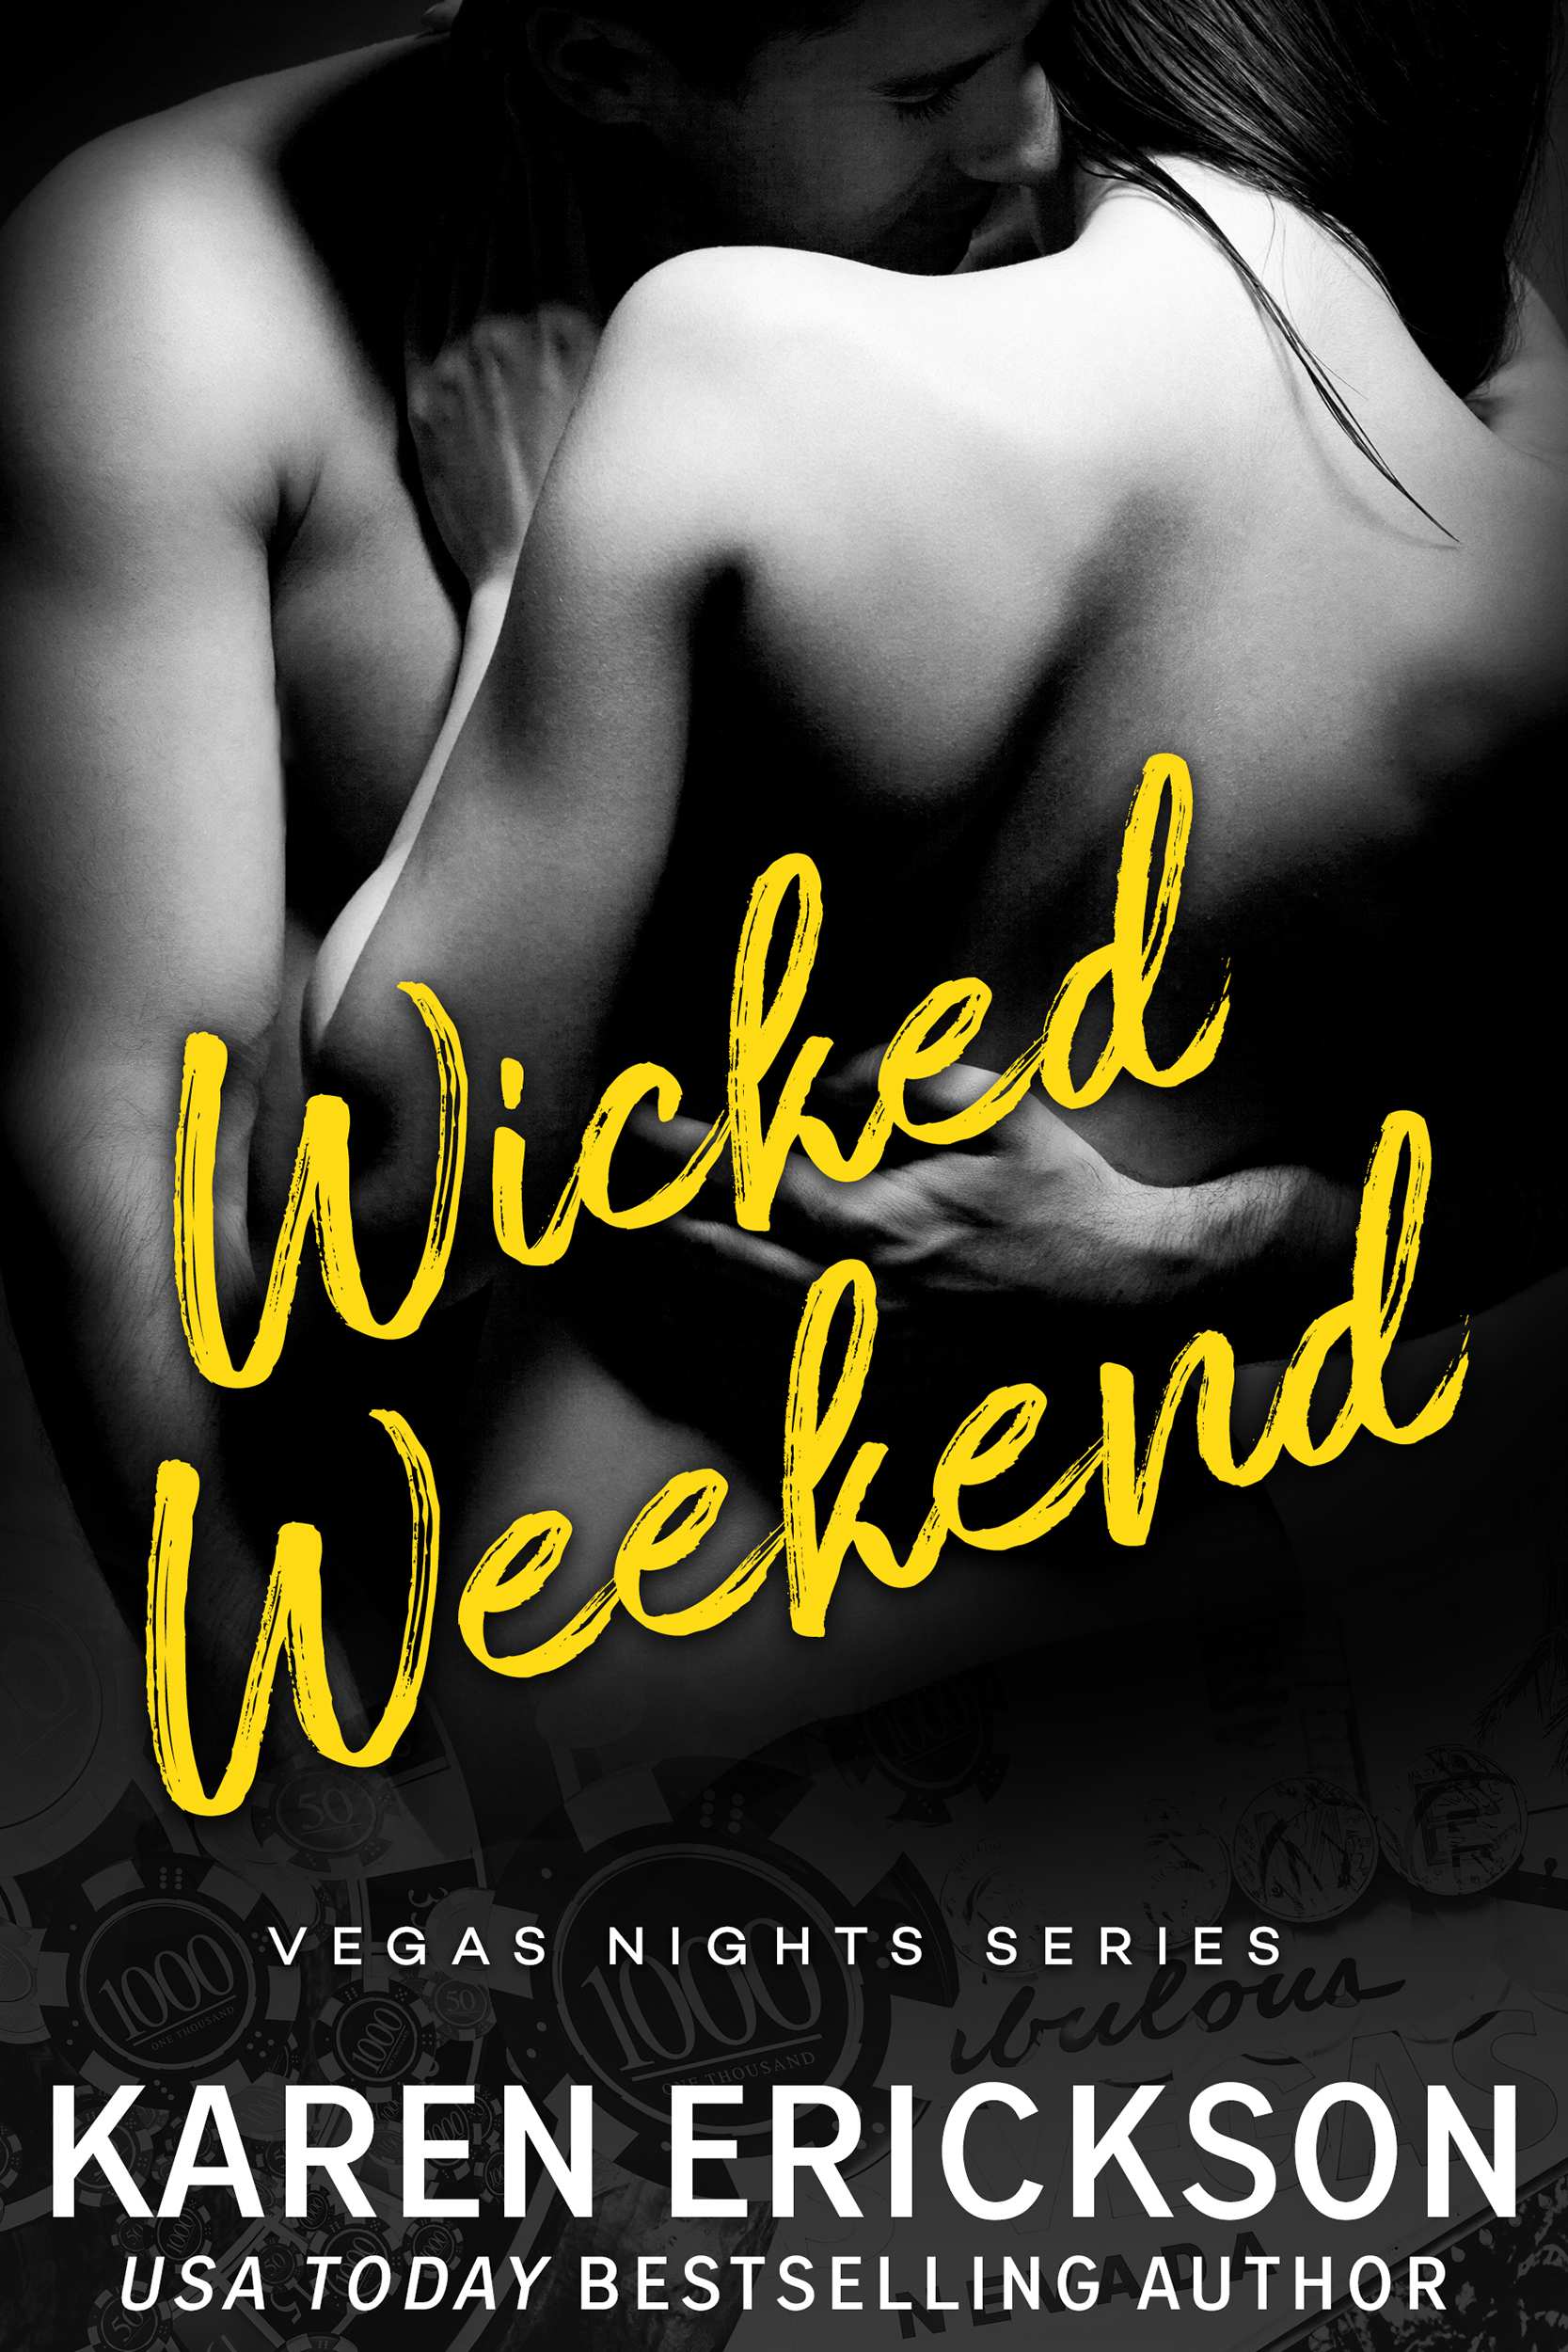 "Wicked Weekend - Vegas Nights, Book 0.5AMAZON • B&N • IBOOKS • KOBO • GOOGLEPLAYWhat happens in Vegas…It was supposed to be the ultimate girl's weekend. Days of tanning and gambling followed by nights of dancing and parties. After surviving nursing school, Reagan and her two besties are living for this Vegas trip.They've barely stepped foot into Sin City when a man approaches them with a shocking offer—be the eye candy at his boss's private party.It's an easy ""no"" until Reagan discovers the identity of the mysterious boss.Declan Carter has been her #1 Hollywood crush for as long as she can remember. And this is an opportunity too good to pass up. Tonight is Reagan's chance to make her wildest fantasies come to life.Deal her in."